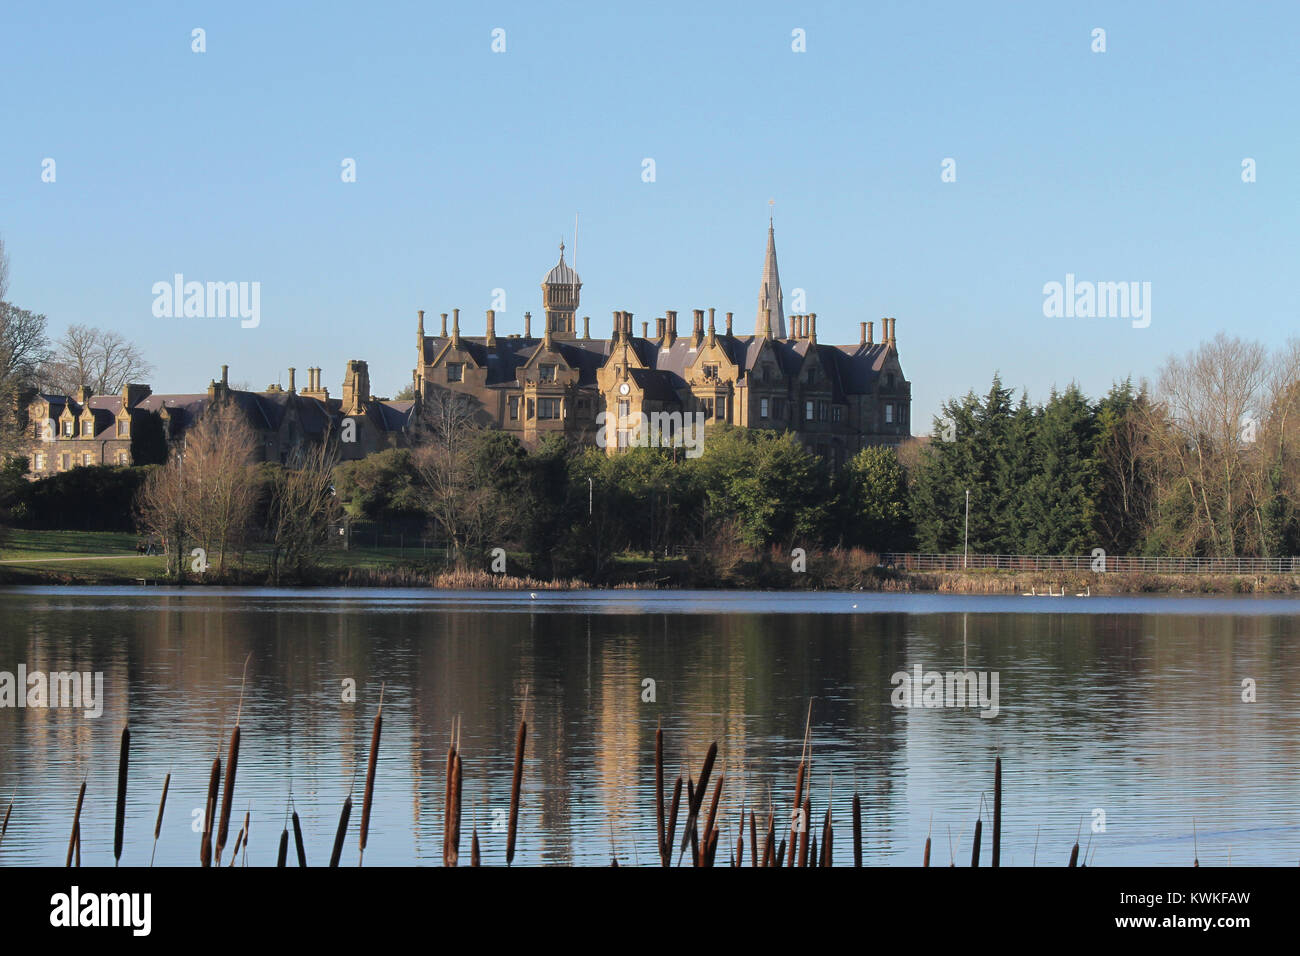 Brownlow House and Lurgan Park Lake in County Armagh Northern Ireland. Stock Photo